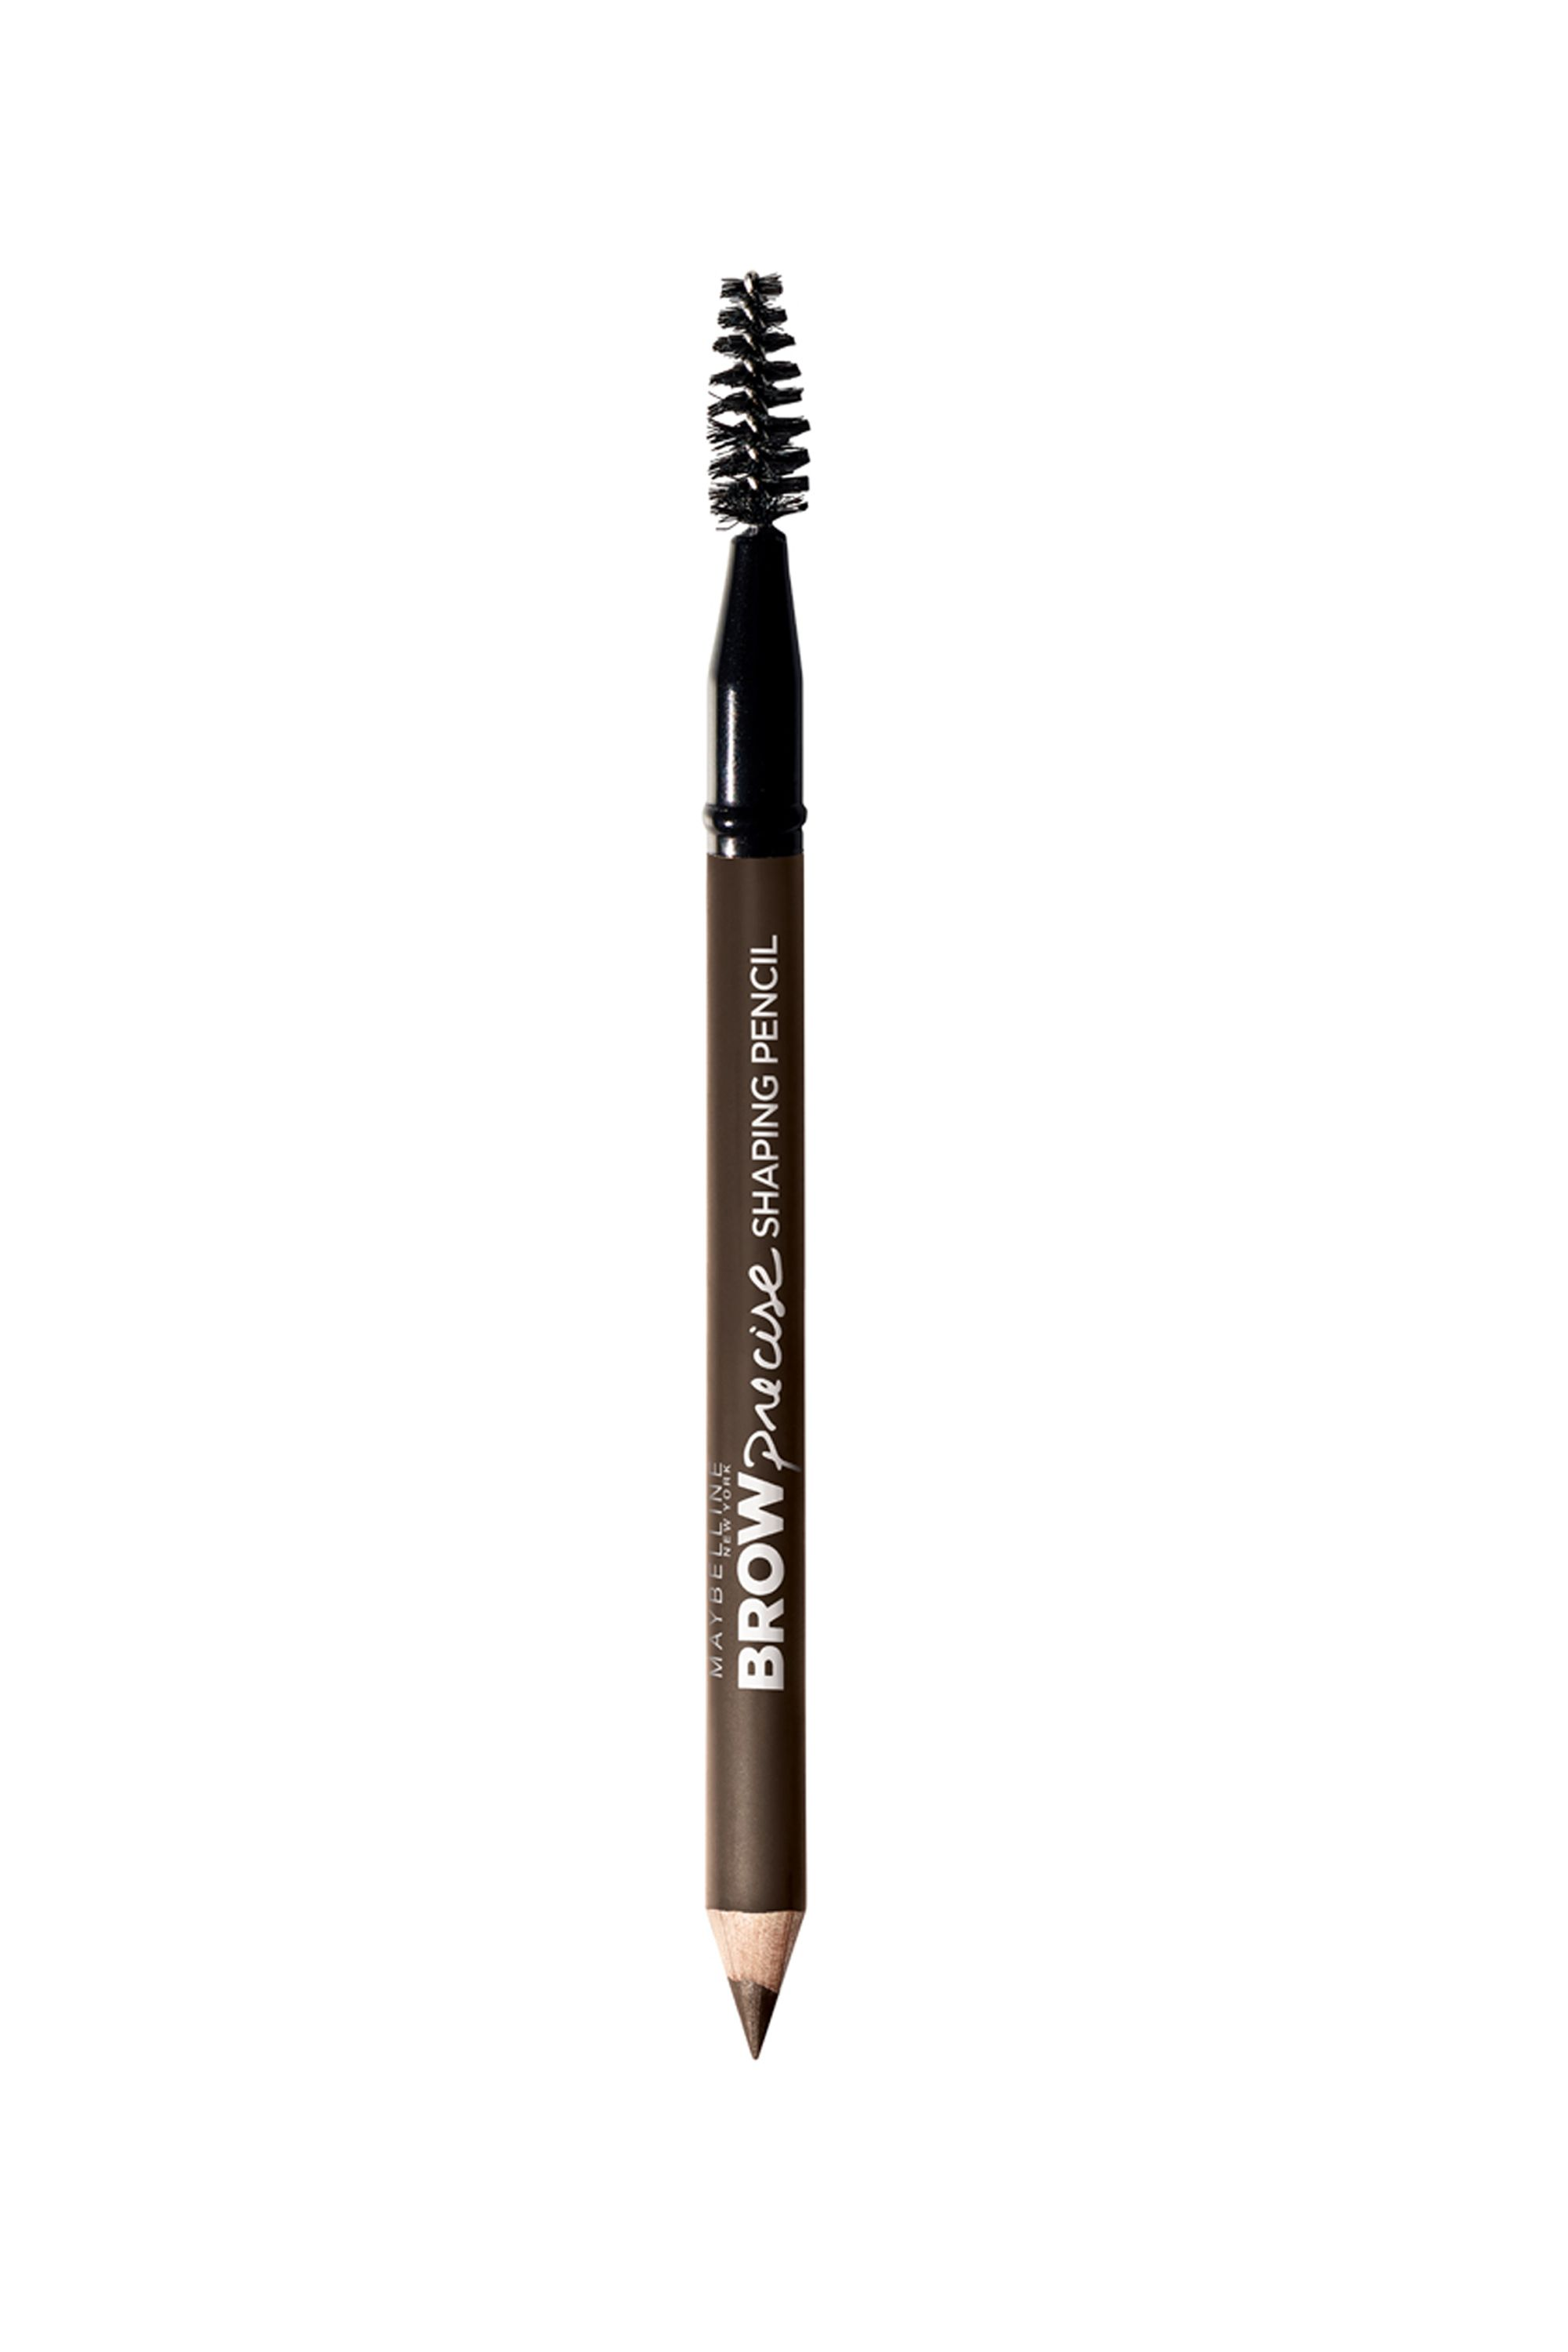 "<p>Brow grooming starts—and ends—with a mascara wand. </p><p><strong>PRO TIP:</strong> Double-ended brow pencils often come with this tool. You can stock up clean mascara wands at any beauty supply store, too, says Maral Balian, a makeup artist and eyebrow specialist at  New York's Warren Tricomi salon.   </p><p><strong>HOW TO USE IT:</strong> Brush brows up for a feathery effect à la Gigi Hadid. Use it as finishing step to blend and soften the look of pencil strokes or powder, too.</p><p>Maybelline New York Eyestudio Brow Precise Shaping Pencil, $6.64; <a href=""http://www.amazon.com/gp/product/B00PFCSE5Q?keywords=brow%20precise&qid=1444932849&ref_=sr_1_1&sr=8-1"" target=""_blank"">amazon.com</a></p>"